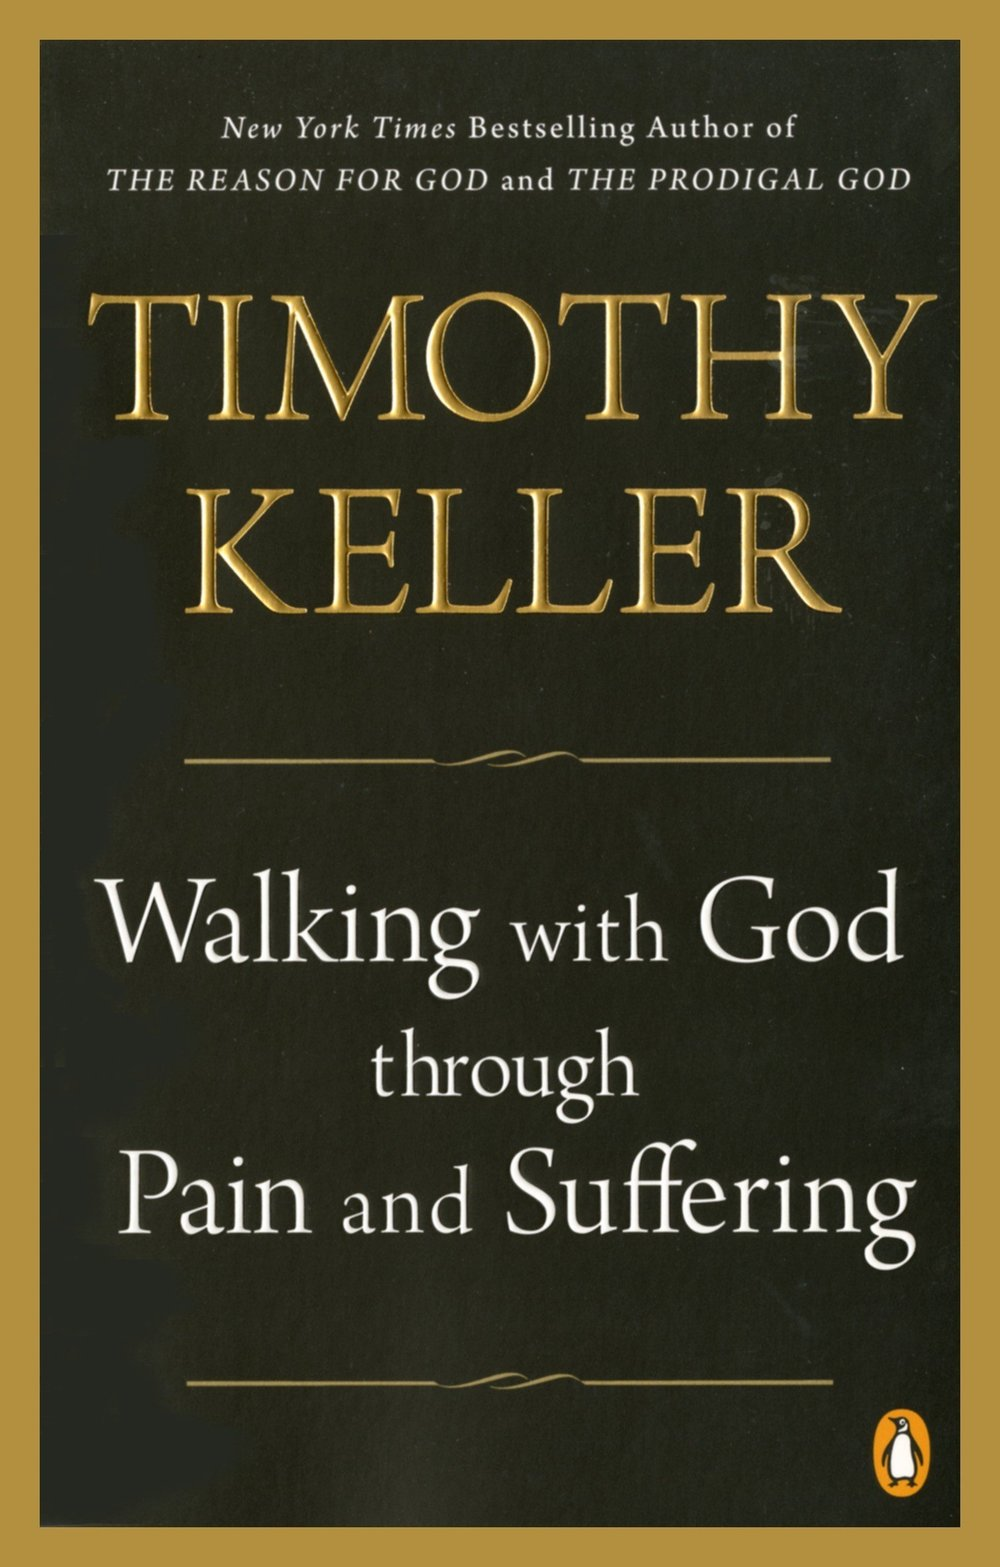 Timothy Keller.jpeg